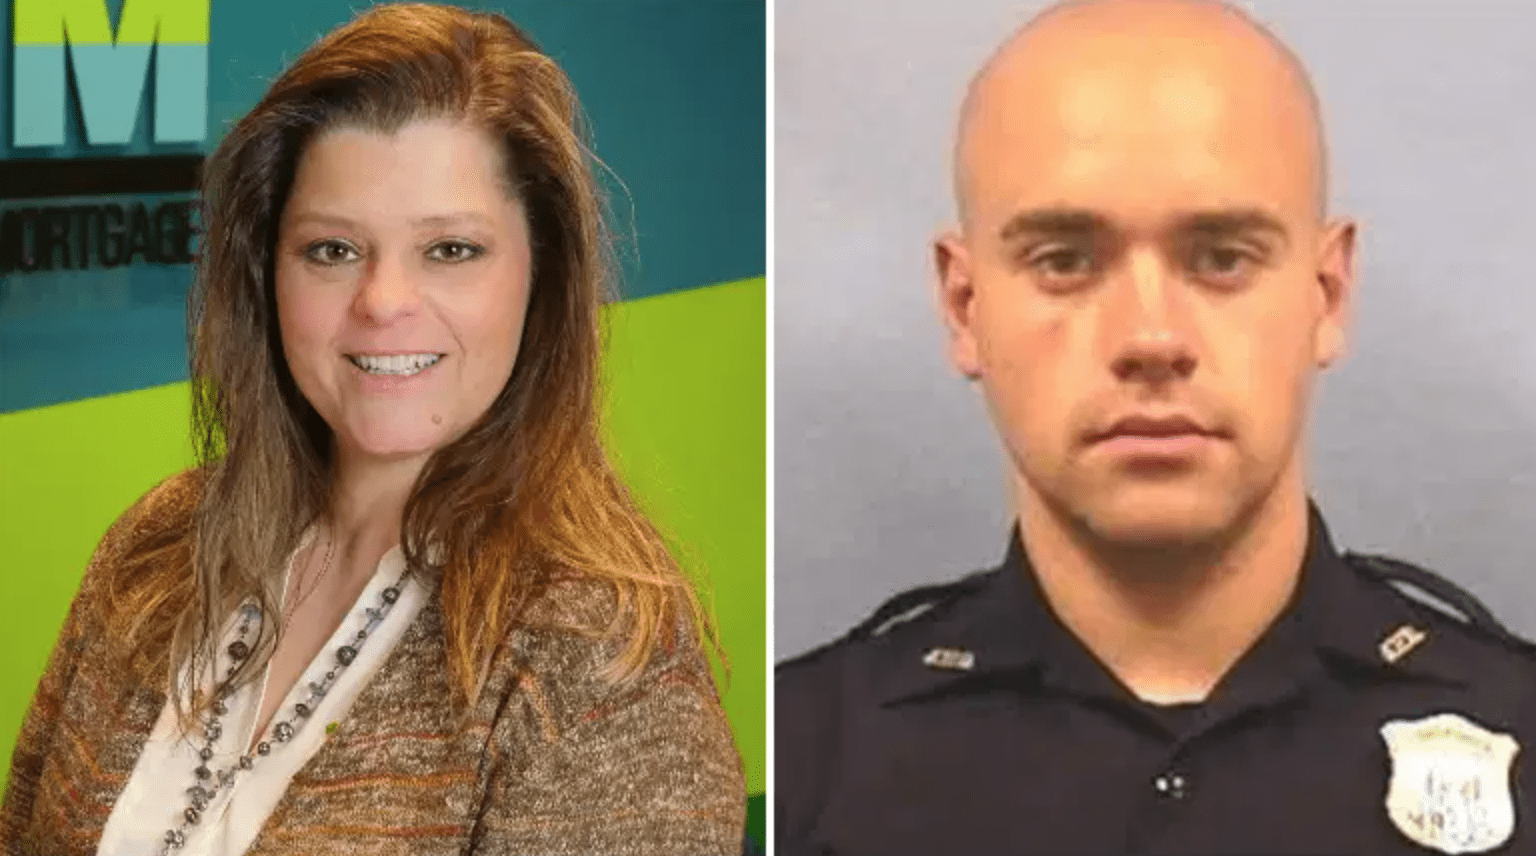 Officer Rolfe's stepmother fired from her job after the District Attorney announced he's being charged